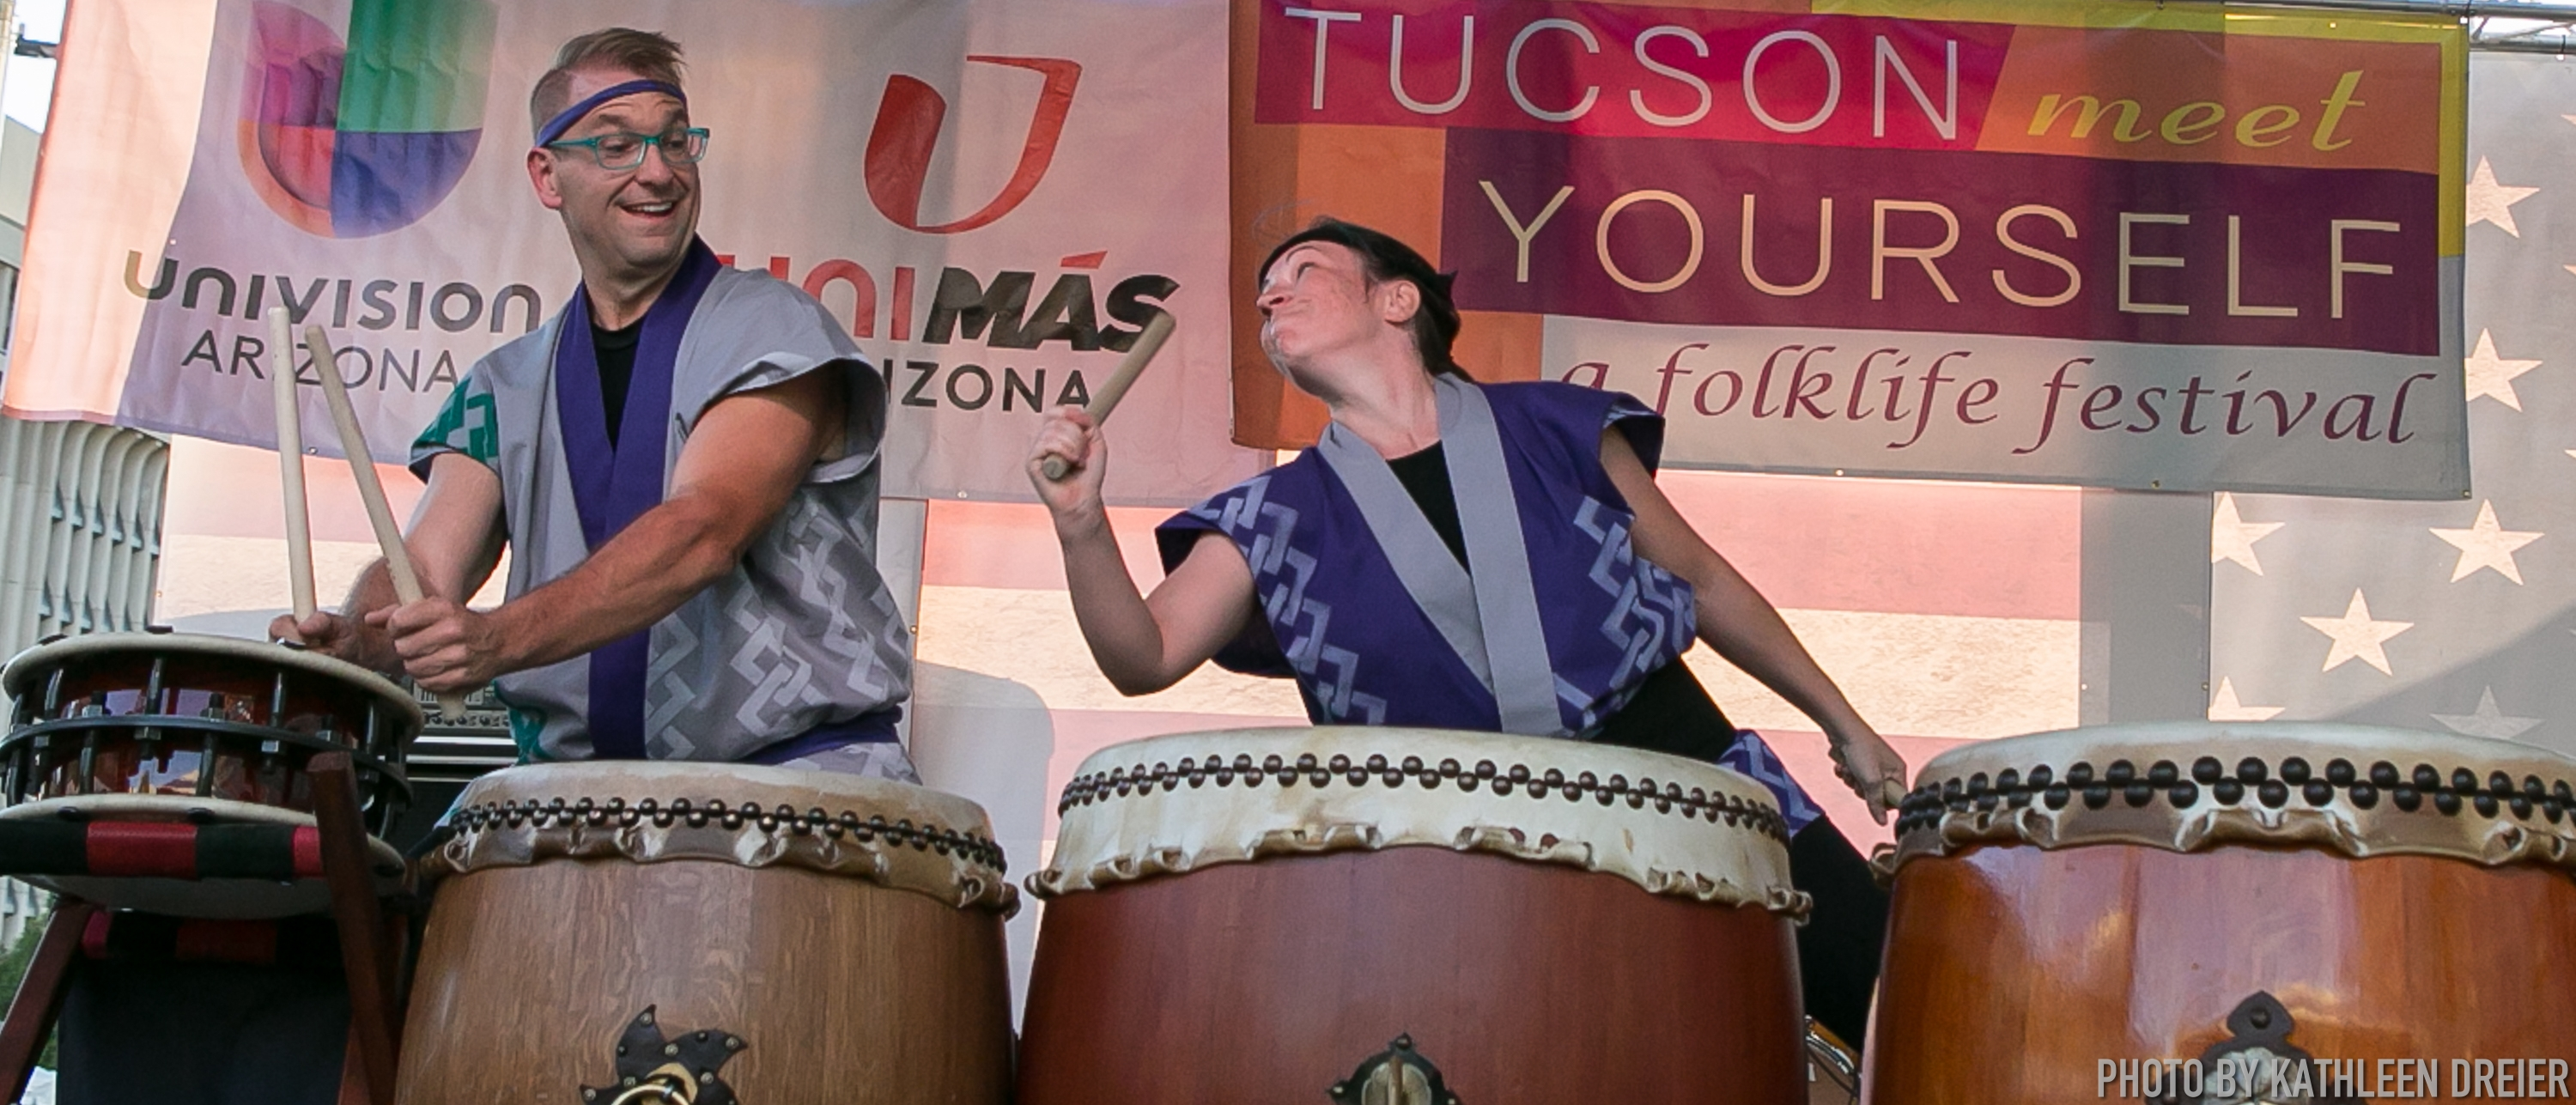 Odaiko Sonora moment at Tucson Meet Yourself, 10/14/17